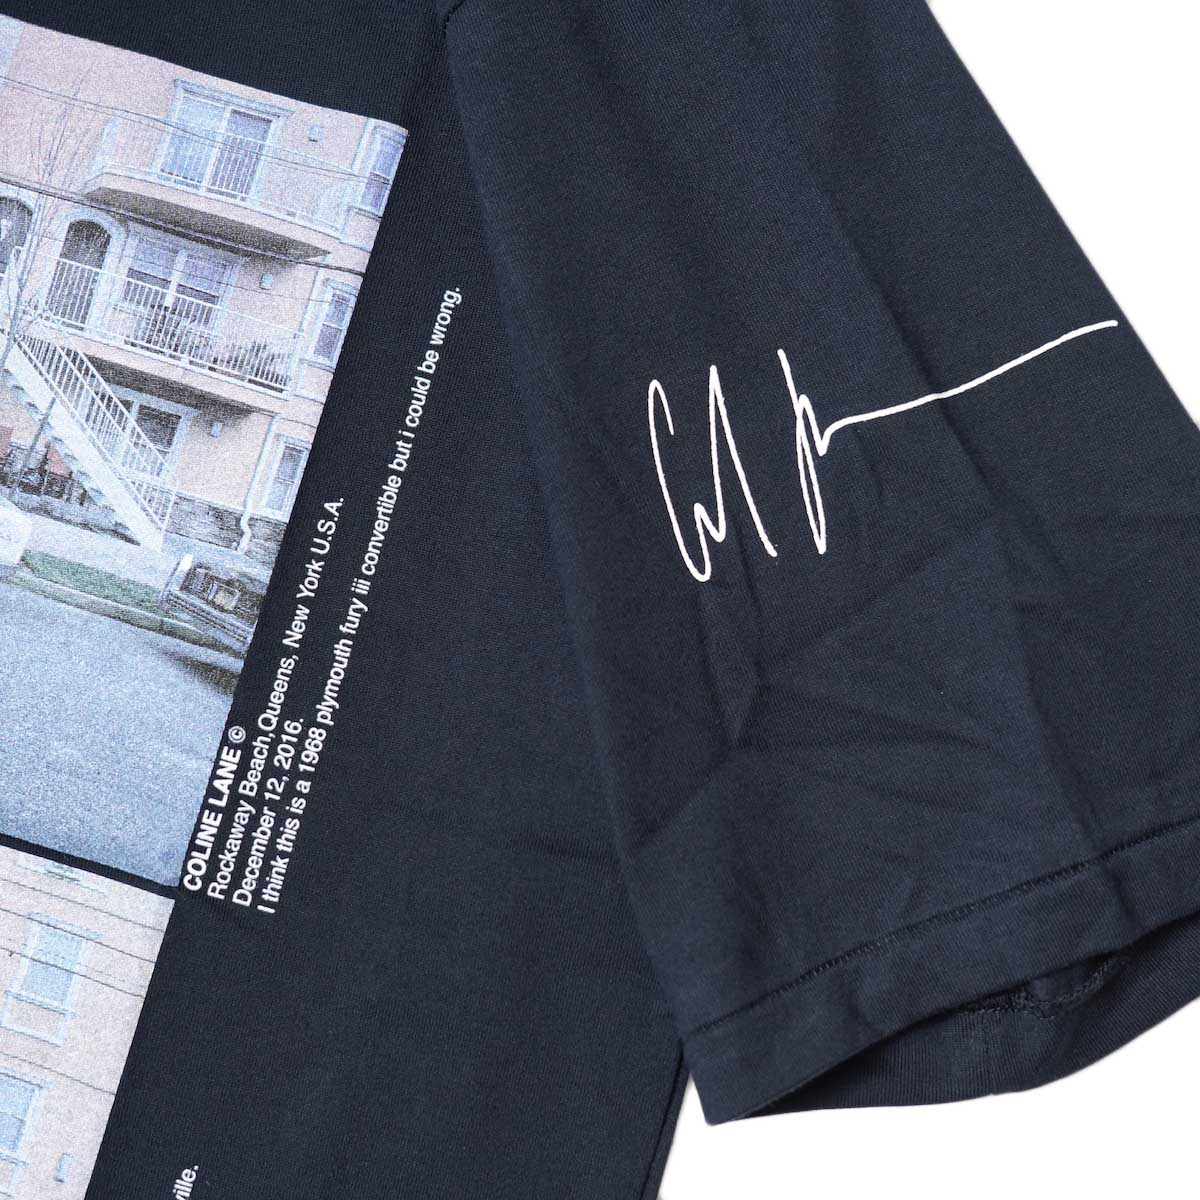 JANE SMITH / CADILLAC PLYMOUTH S/S T-Shirt (Black) 左袖プリント